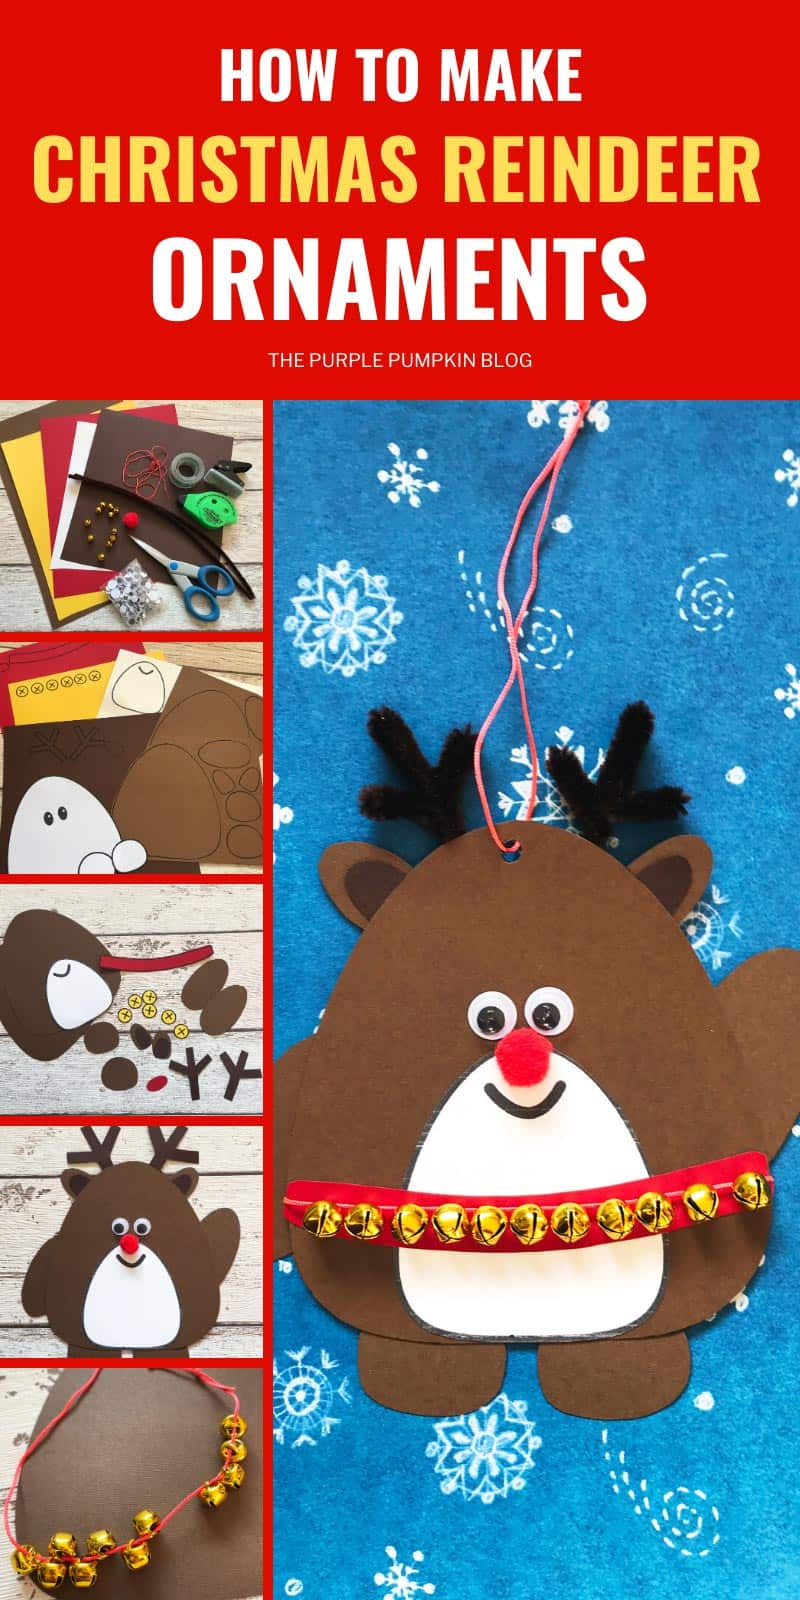 how to make Christmas reindeer ornaments